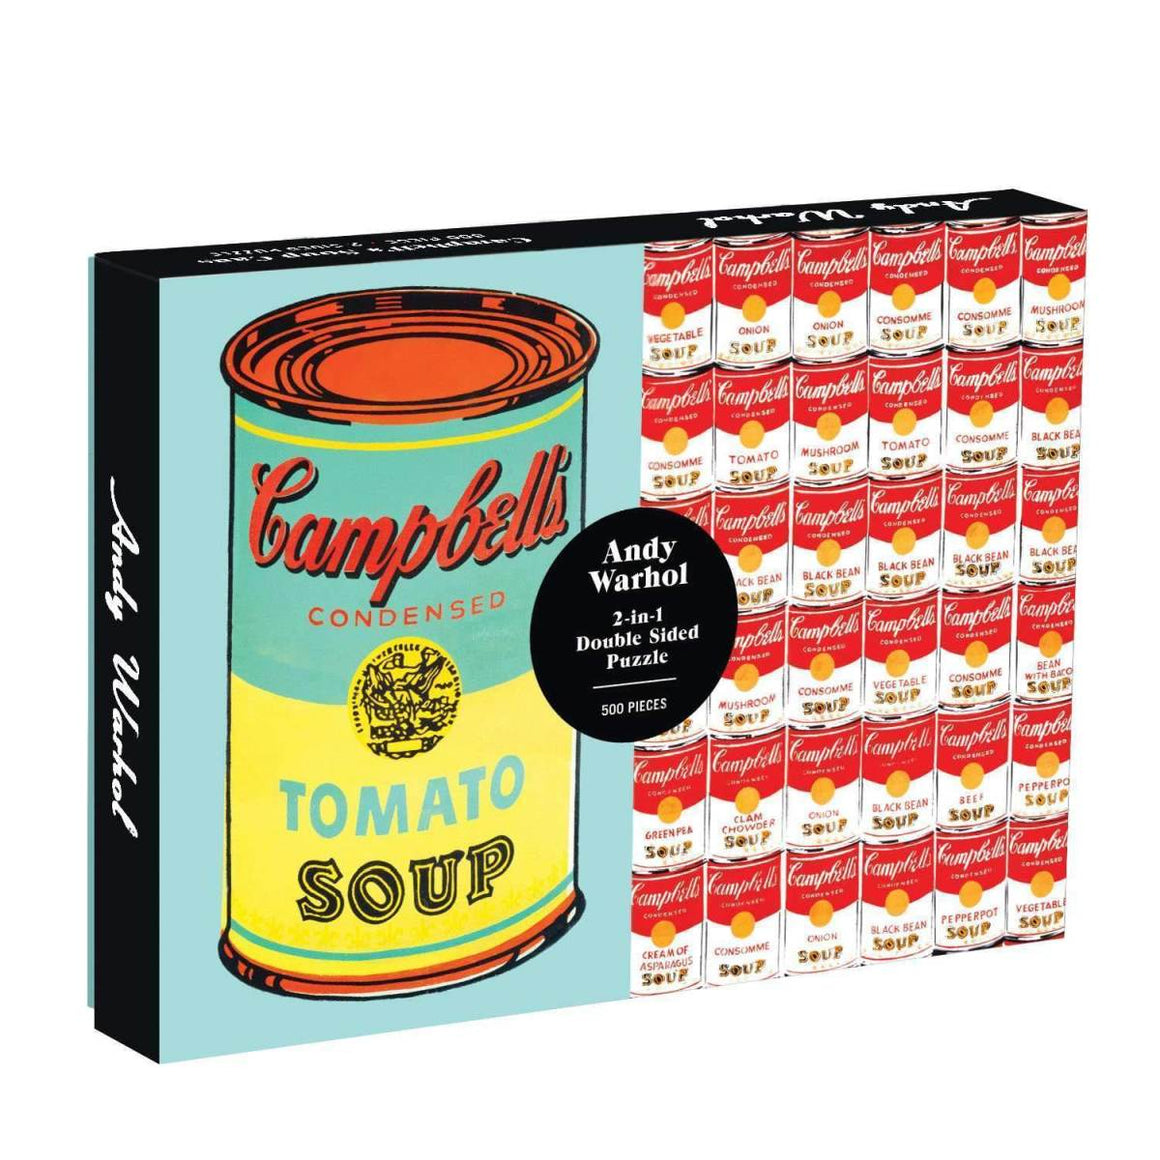 A boxed double sided 500 piece puzzle. The cover displays an image of the two puzzles, one a large green and yellow tones Andy Warhol Tomato Soup Print. The other a collection of stacked Campbell soup cans in different flavours.